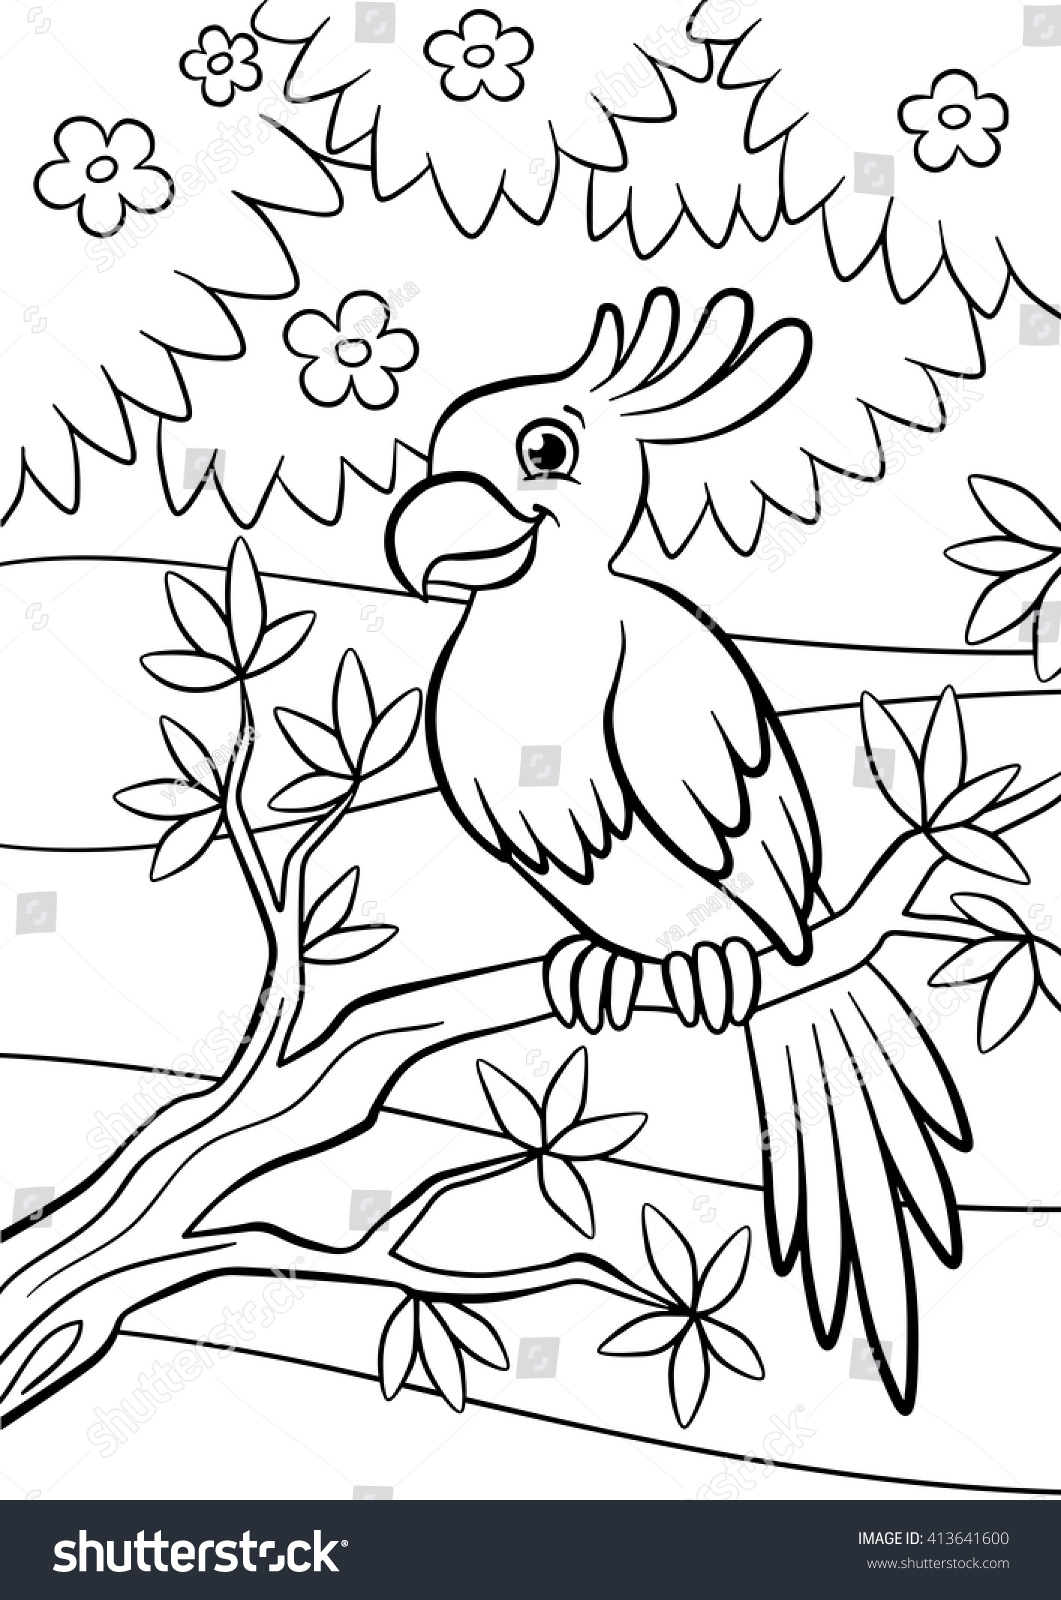 Coloring Pages Birds Little Cute Parrot Stock Vector (Royalty Free ...